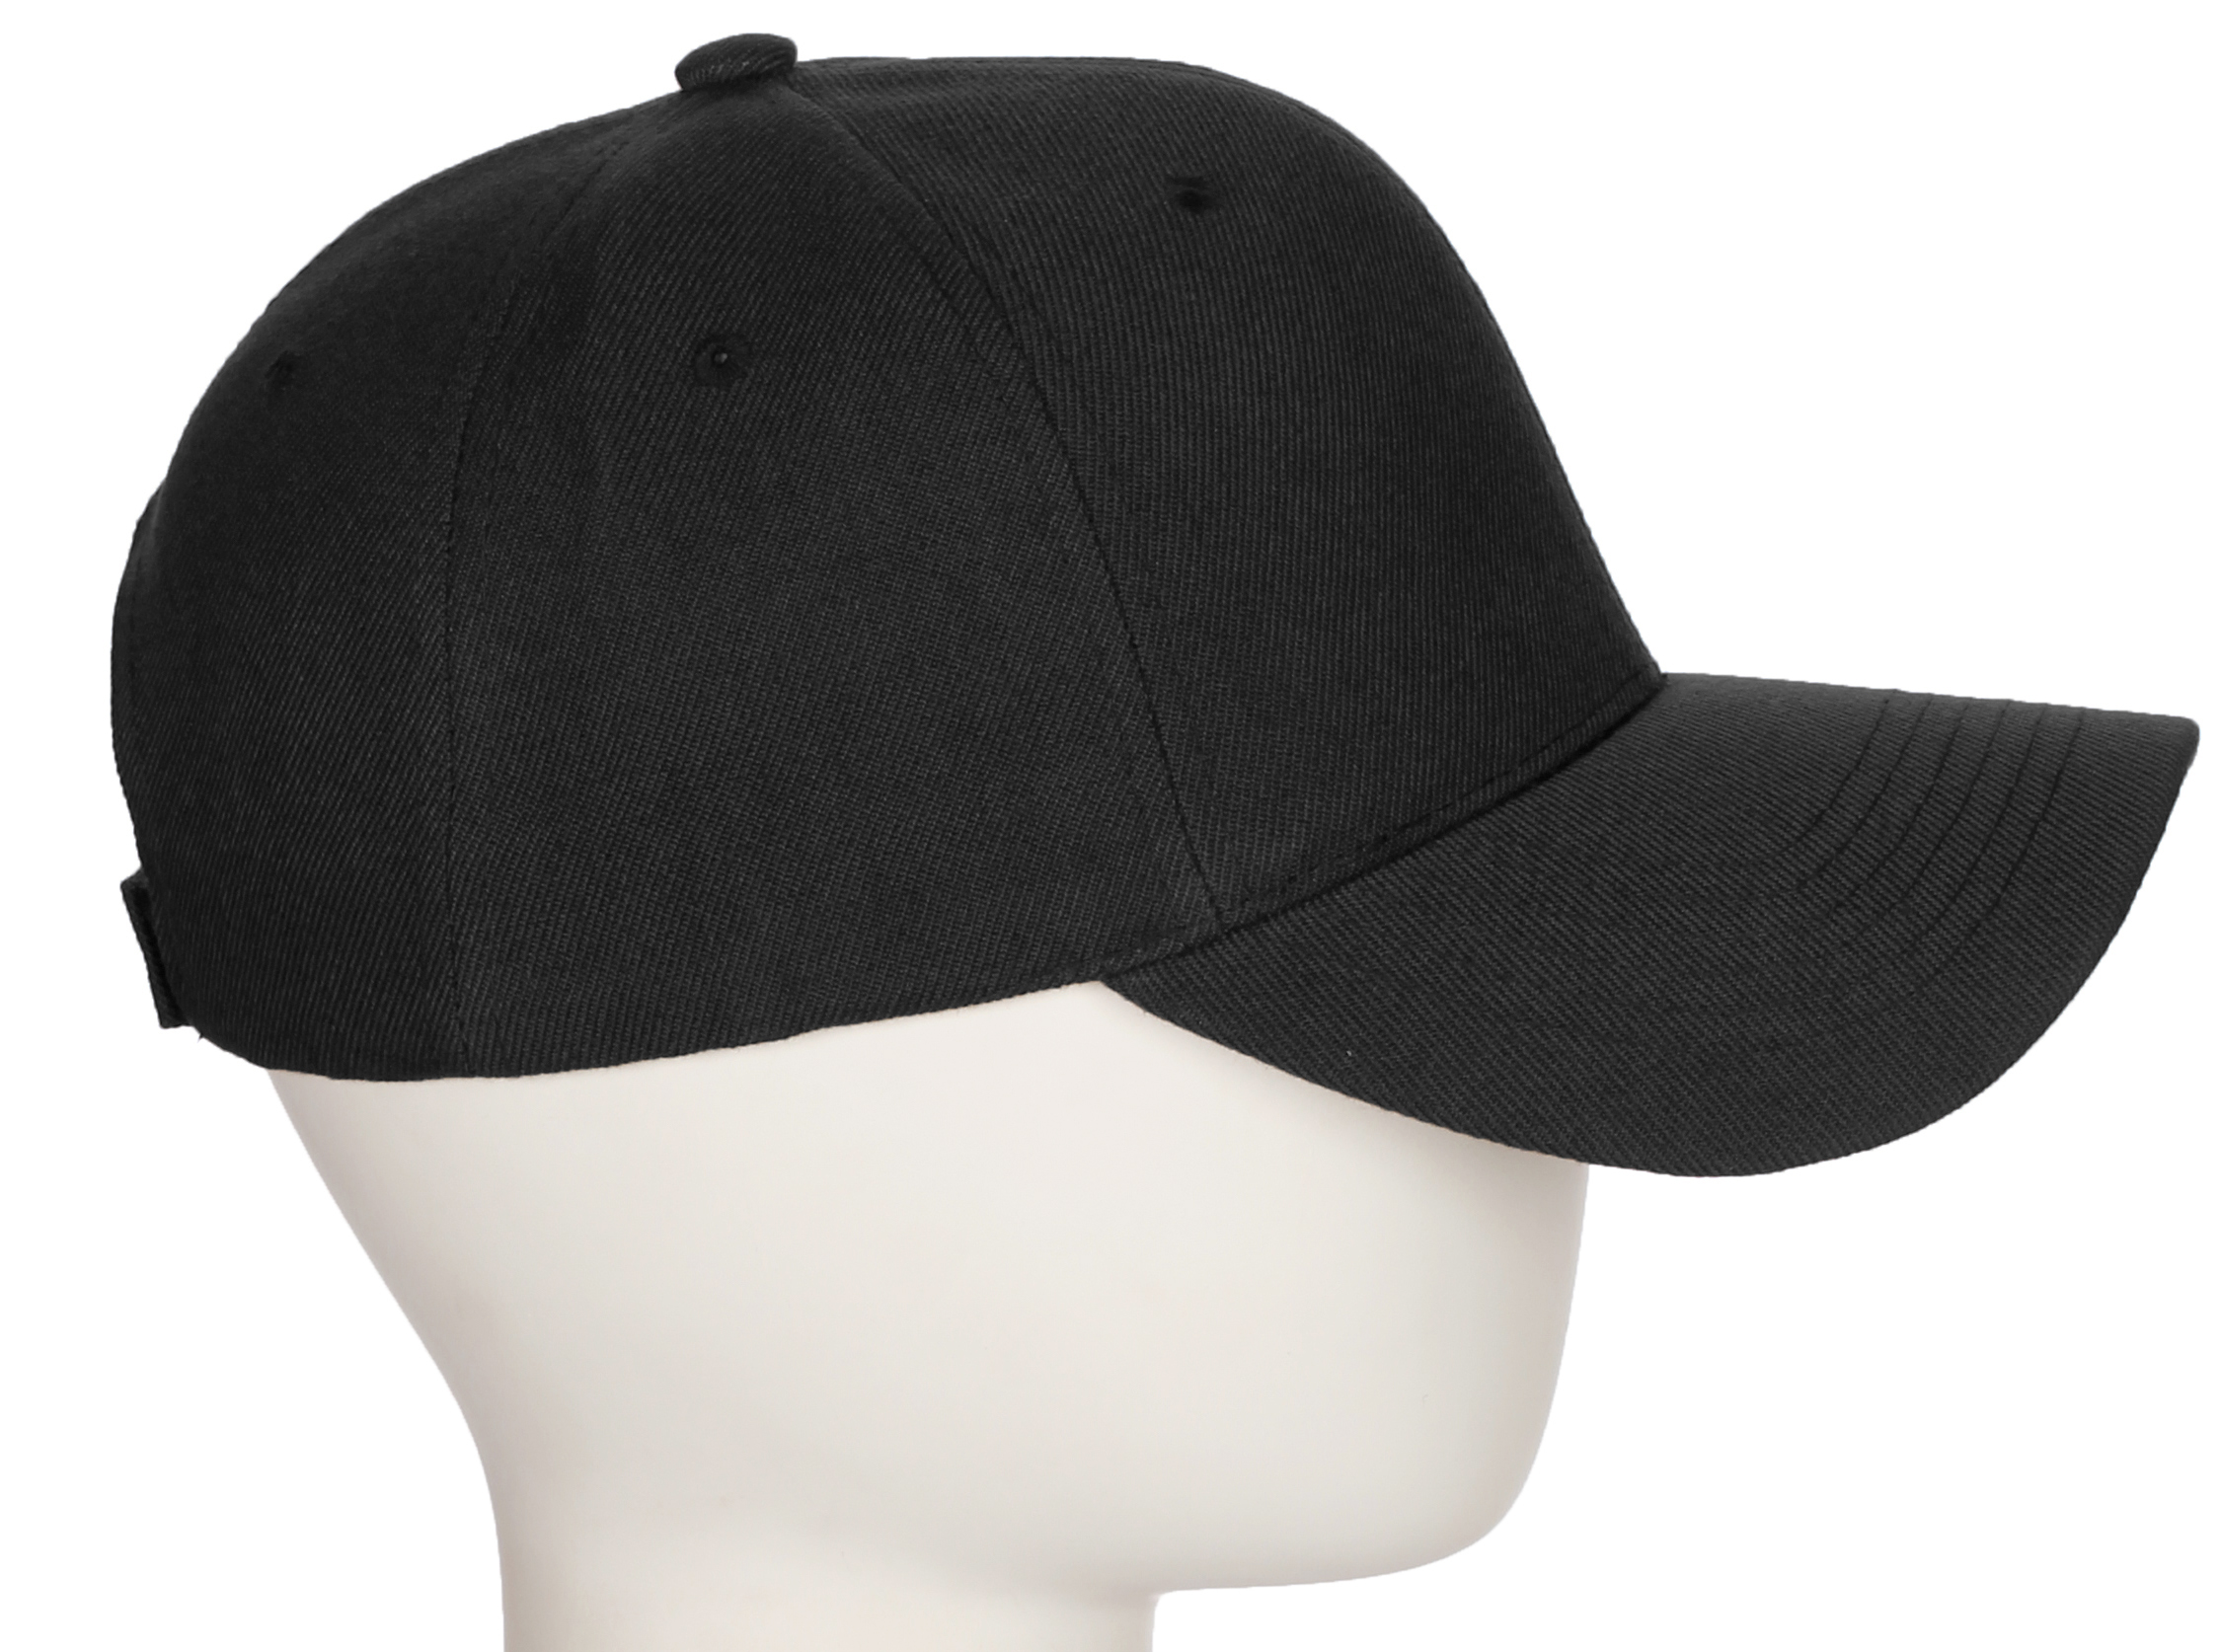 Custom A-Z Initial Letters Baseball Hat Cap - Black Hat with White ... f803d9f70b38